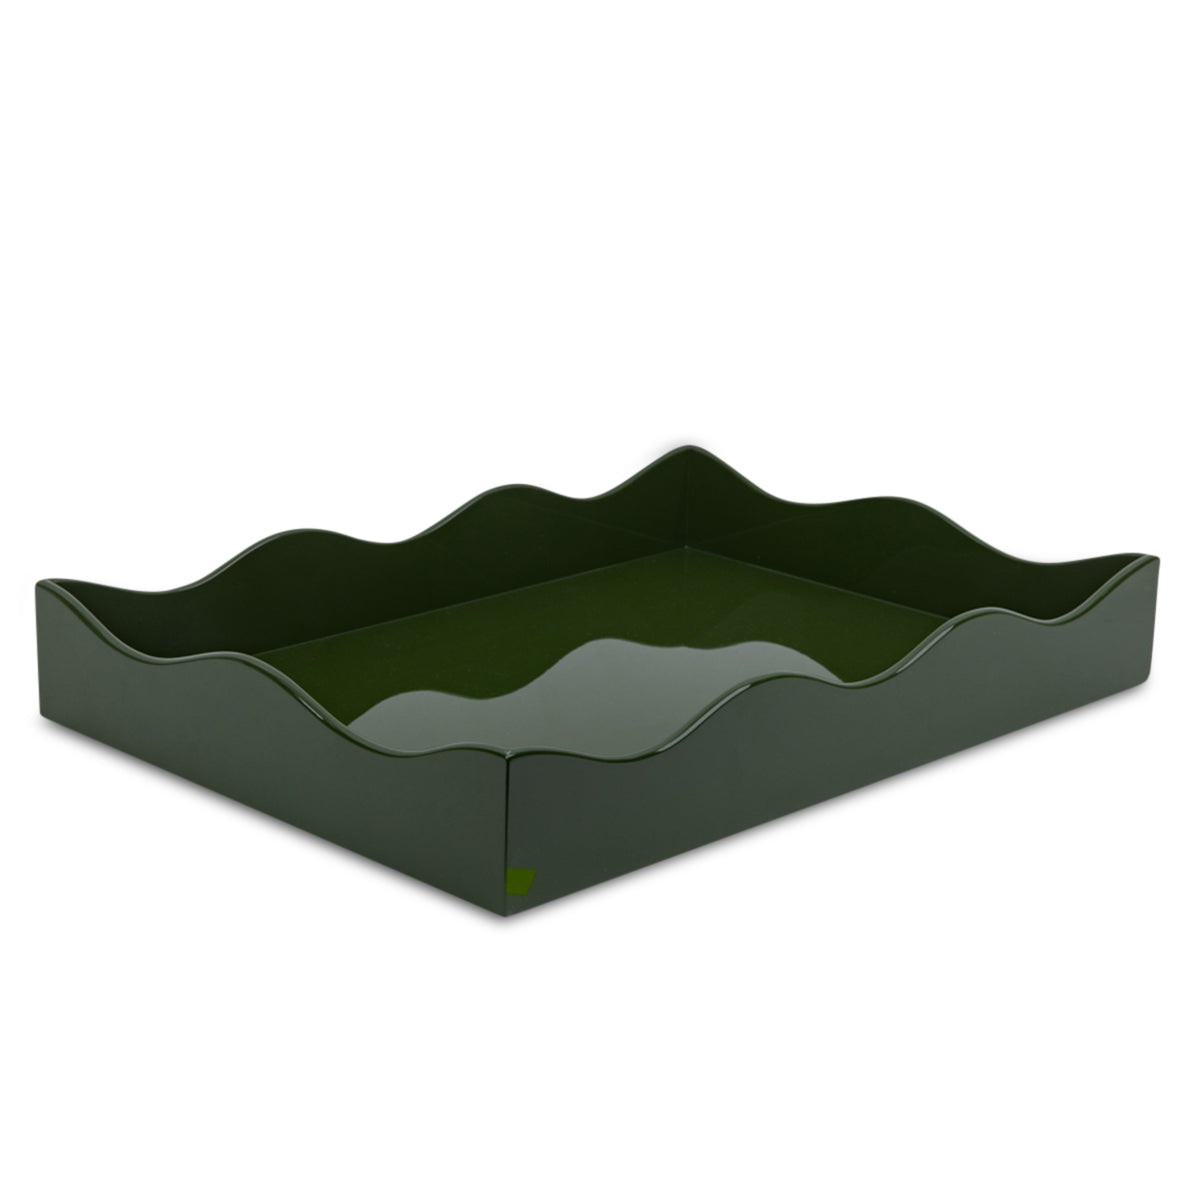 Small Belles Rives Tray - Olive Green